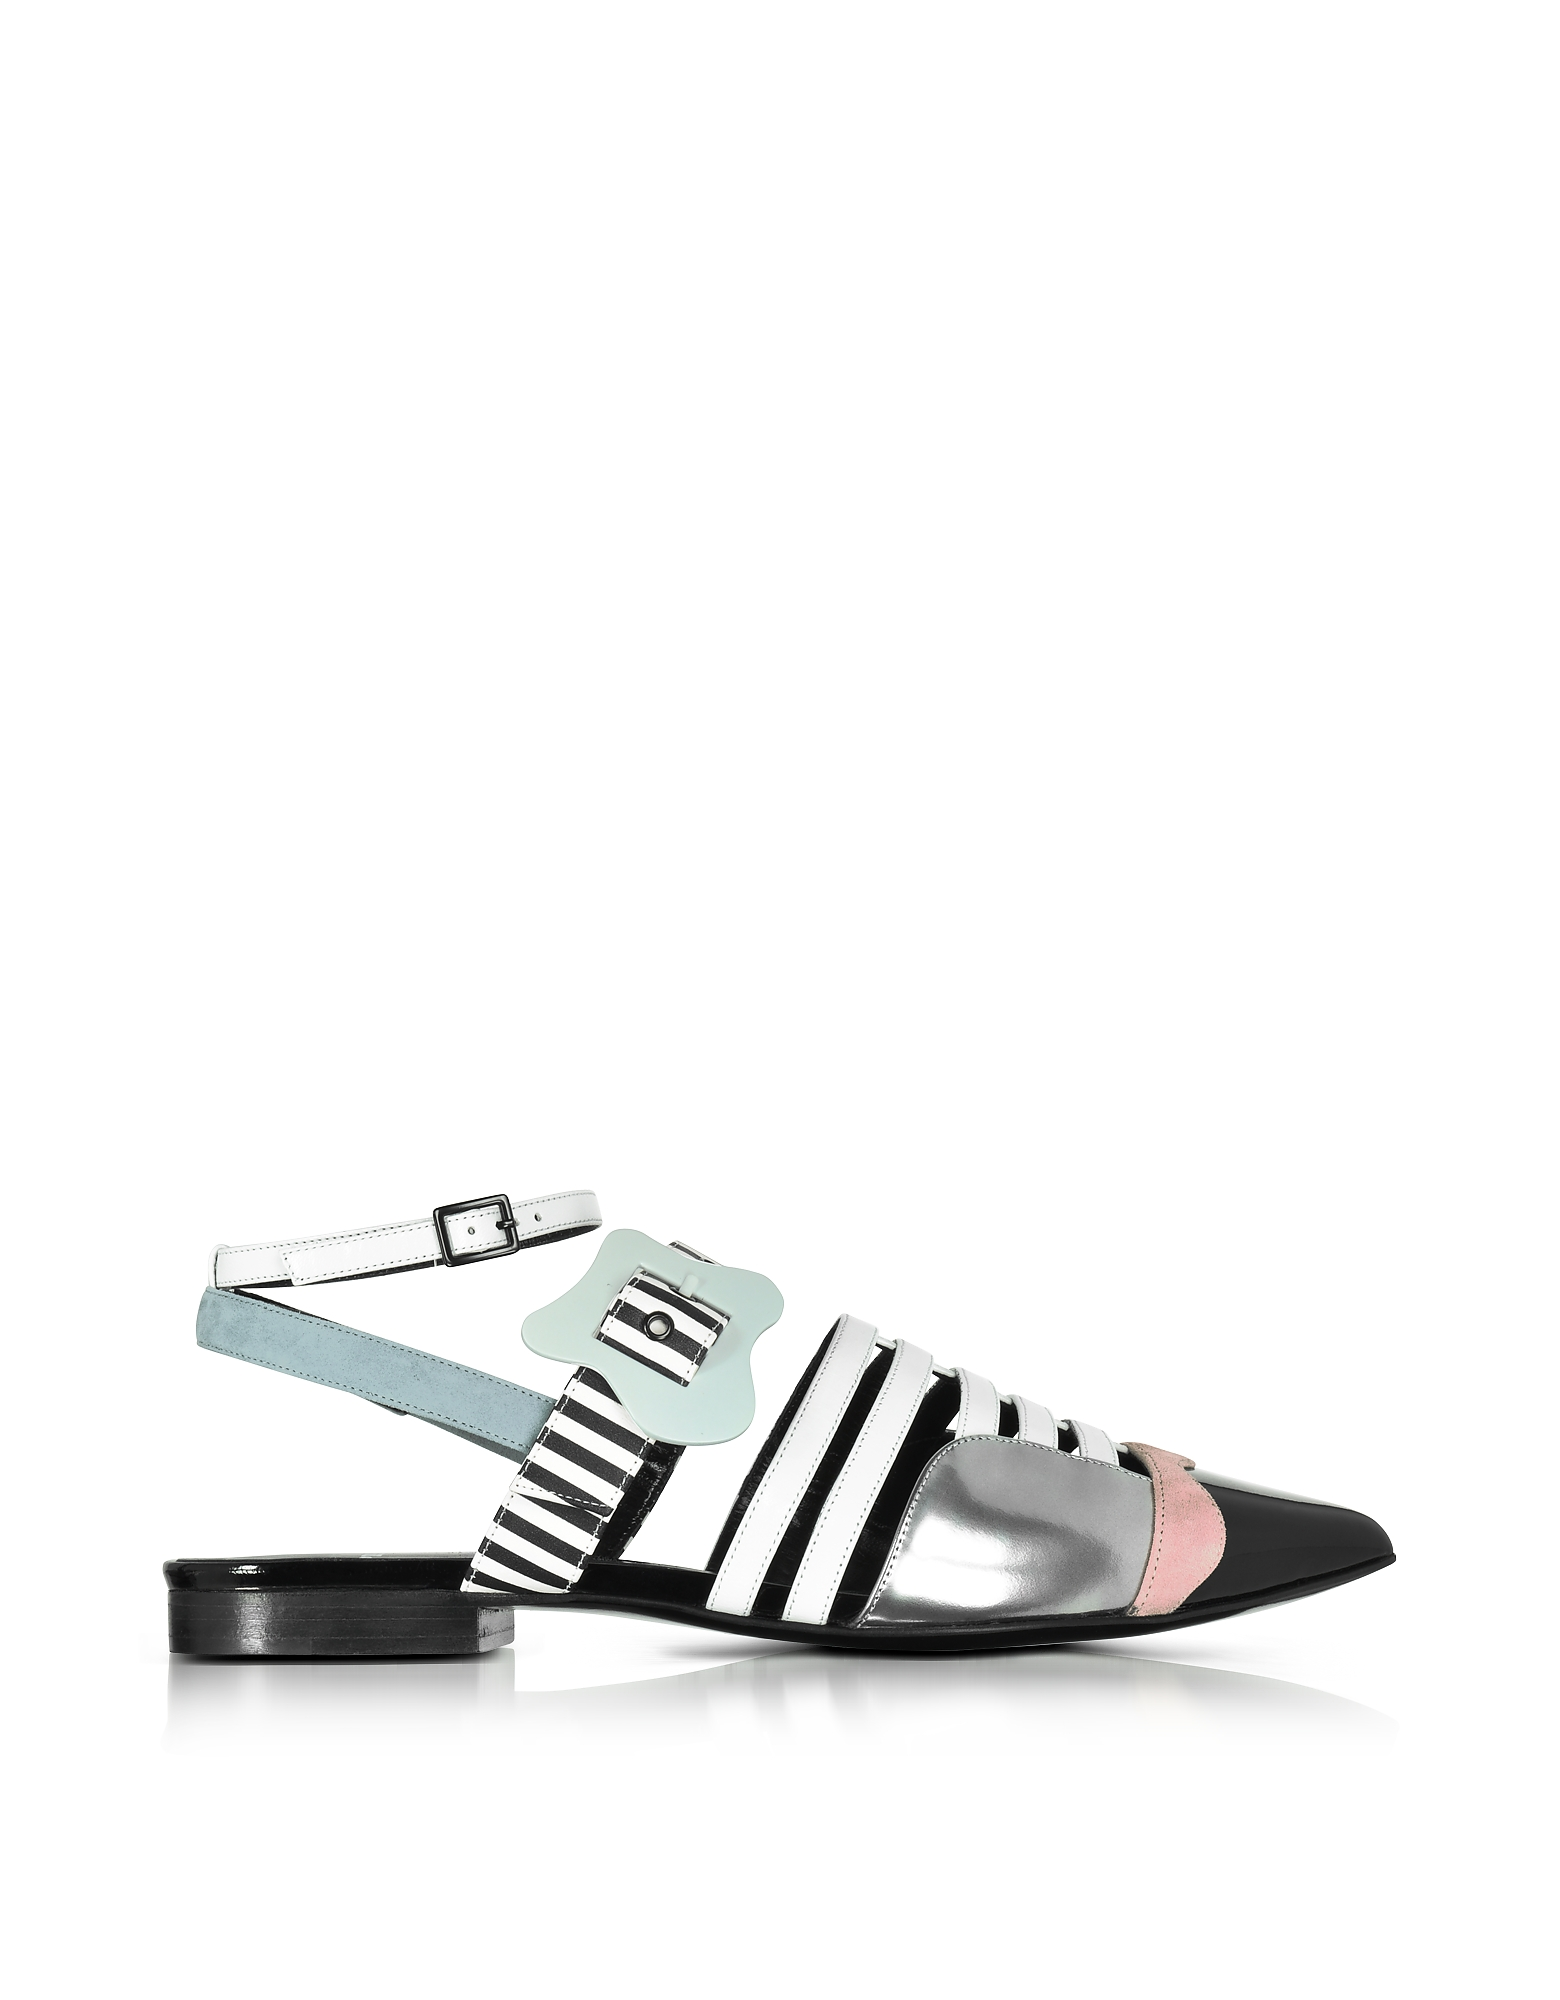 Pierre Hardy Shoes, Multicolor Stripes Leather Alchimia Flat Sandal